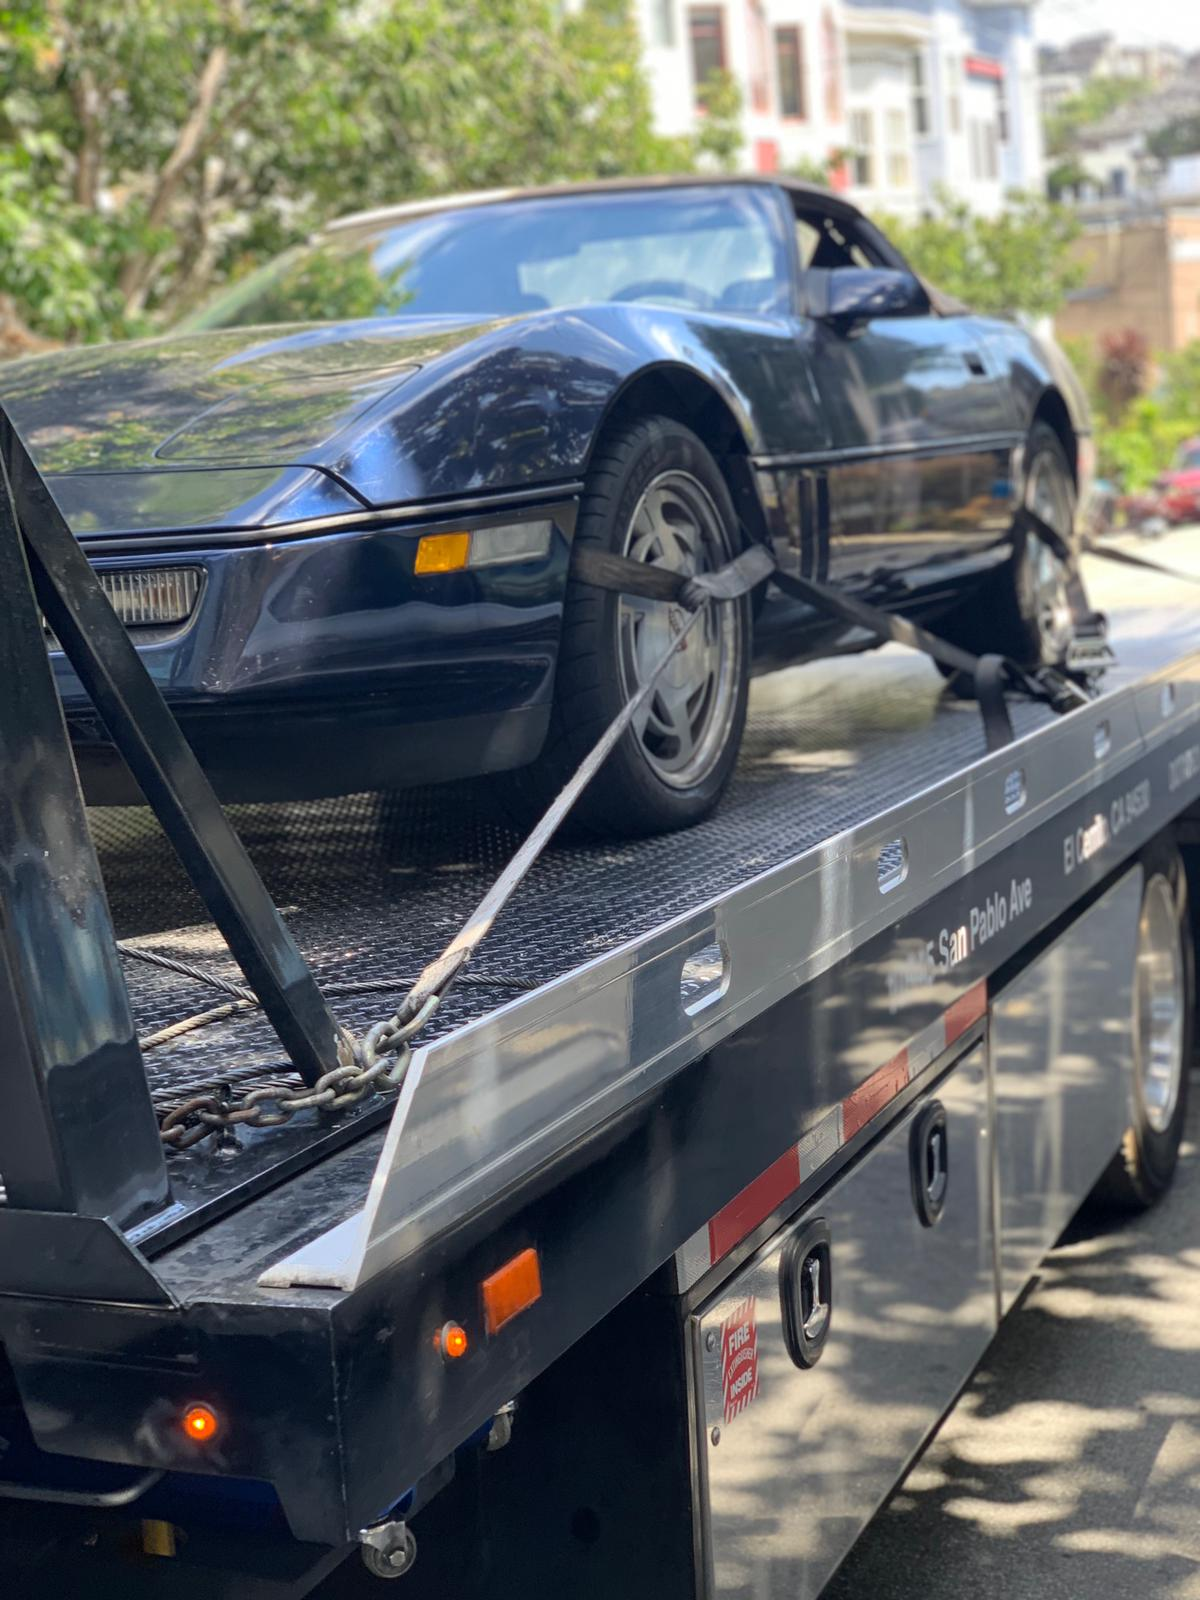 24/7 Towing in the Bay Area by Toro Road Runners